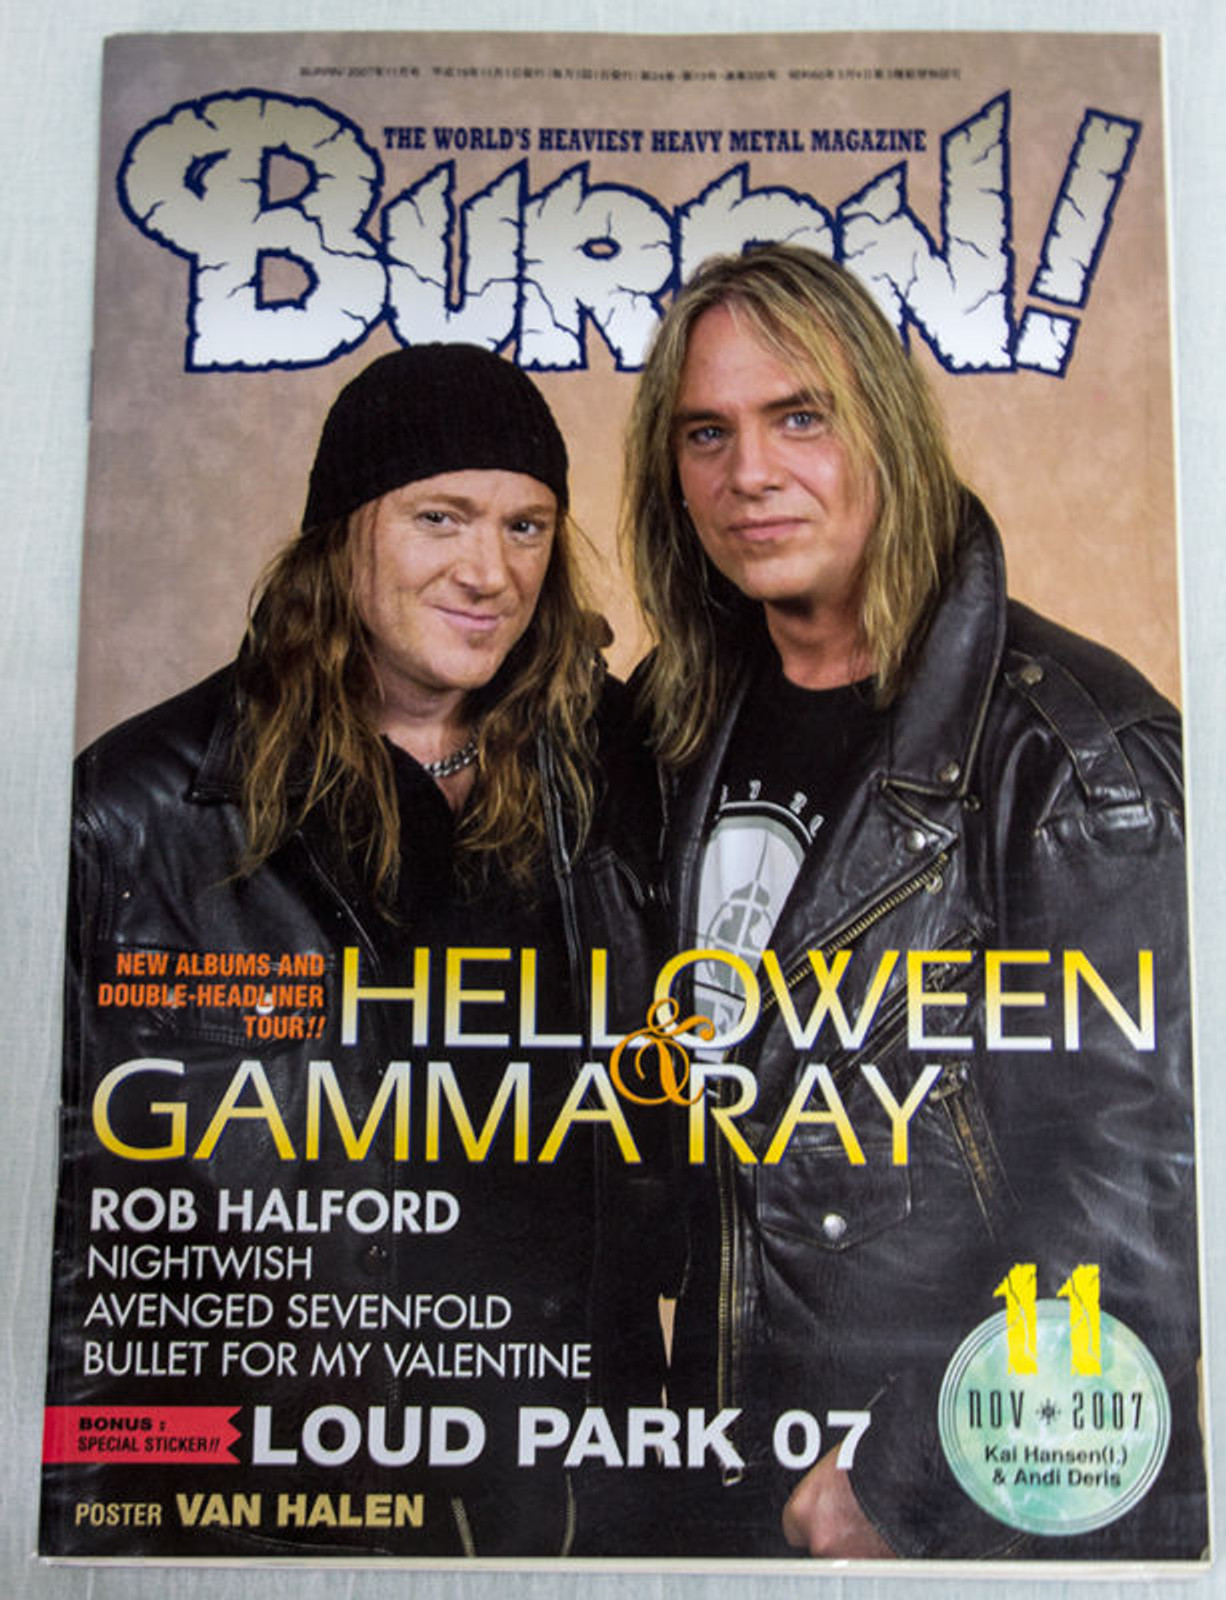 2007/11 BURRN! Japan Magazine HELLOWEEN/GAMMA RAY/LOUD PARK 07/AVENGED SEVENFOLD